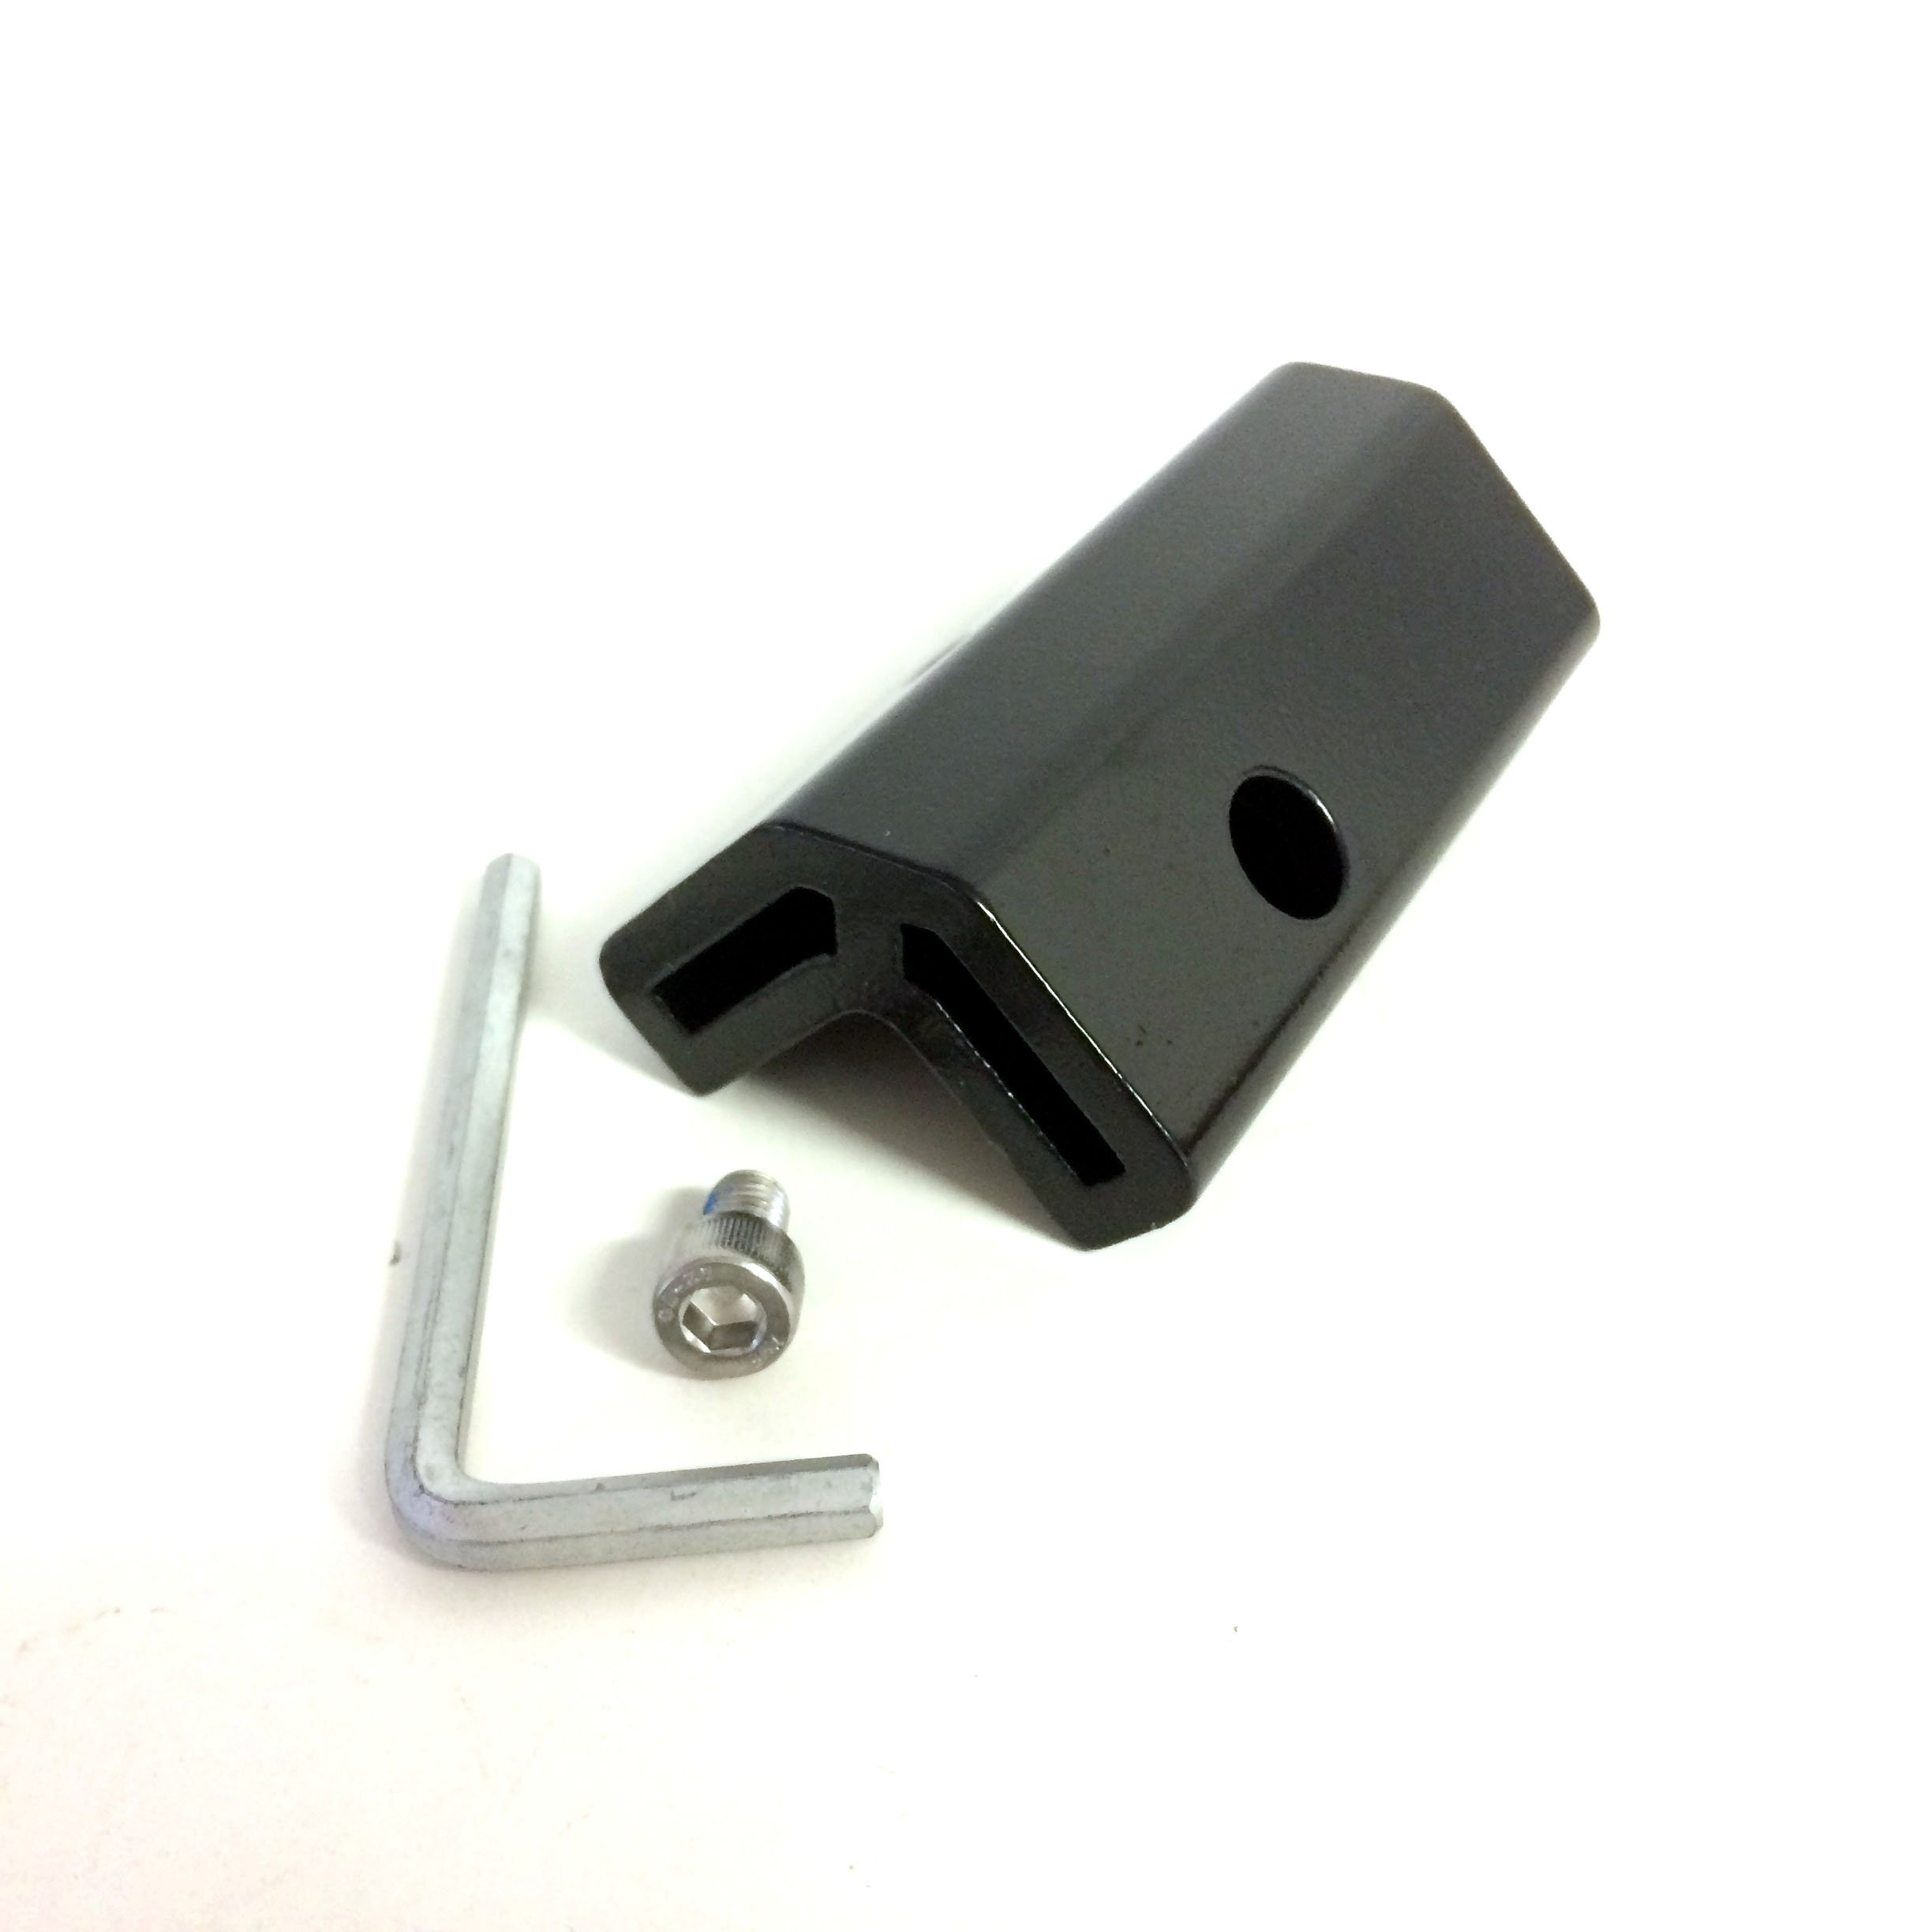 Yakima Replacement Part 2'', Adapter & Screw - 8890342